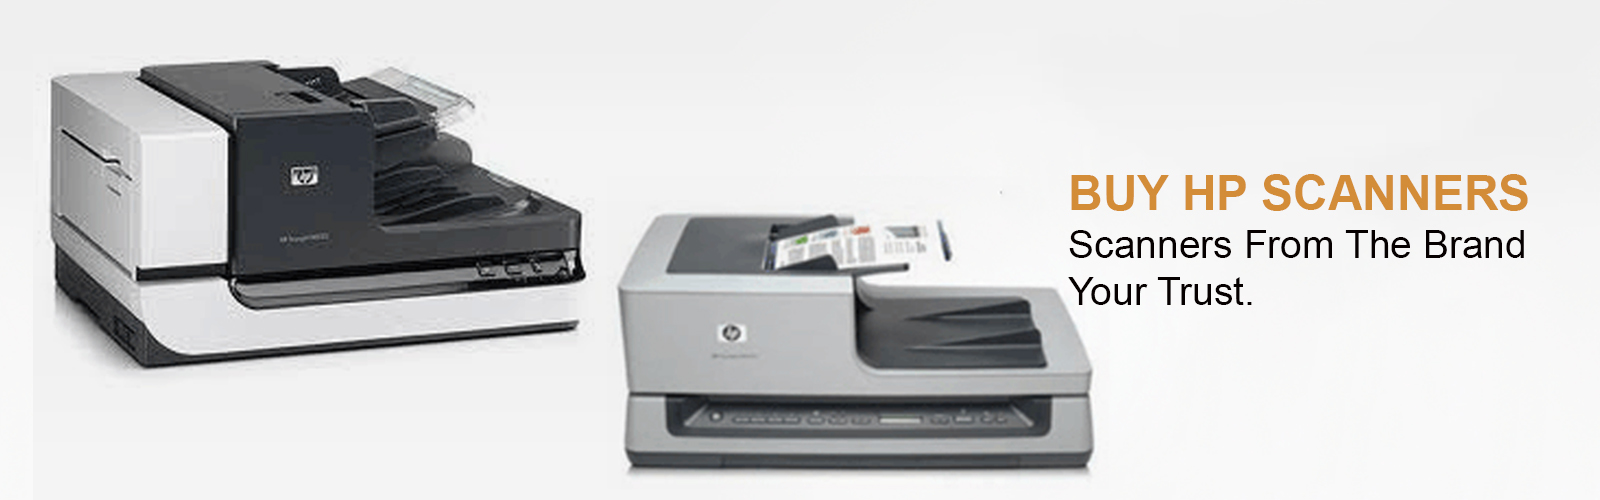 HP Scanner Sale